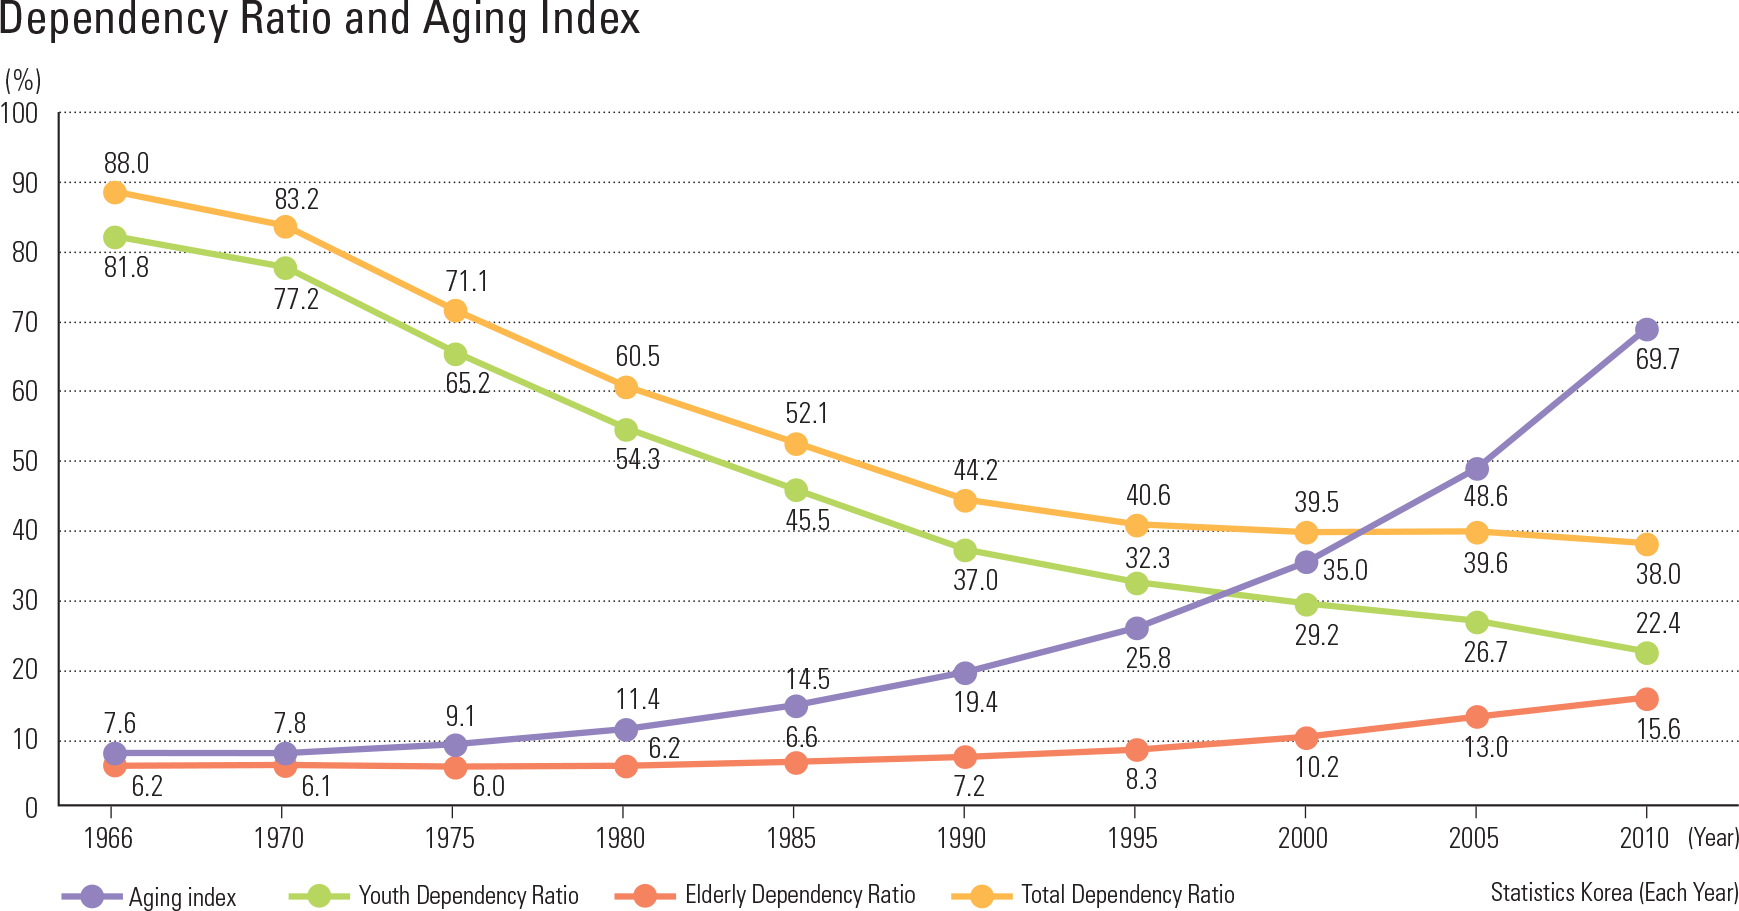 Dependency Ratio and Aging Index